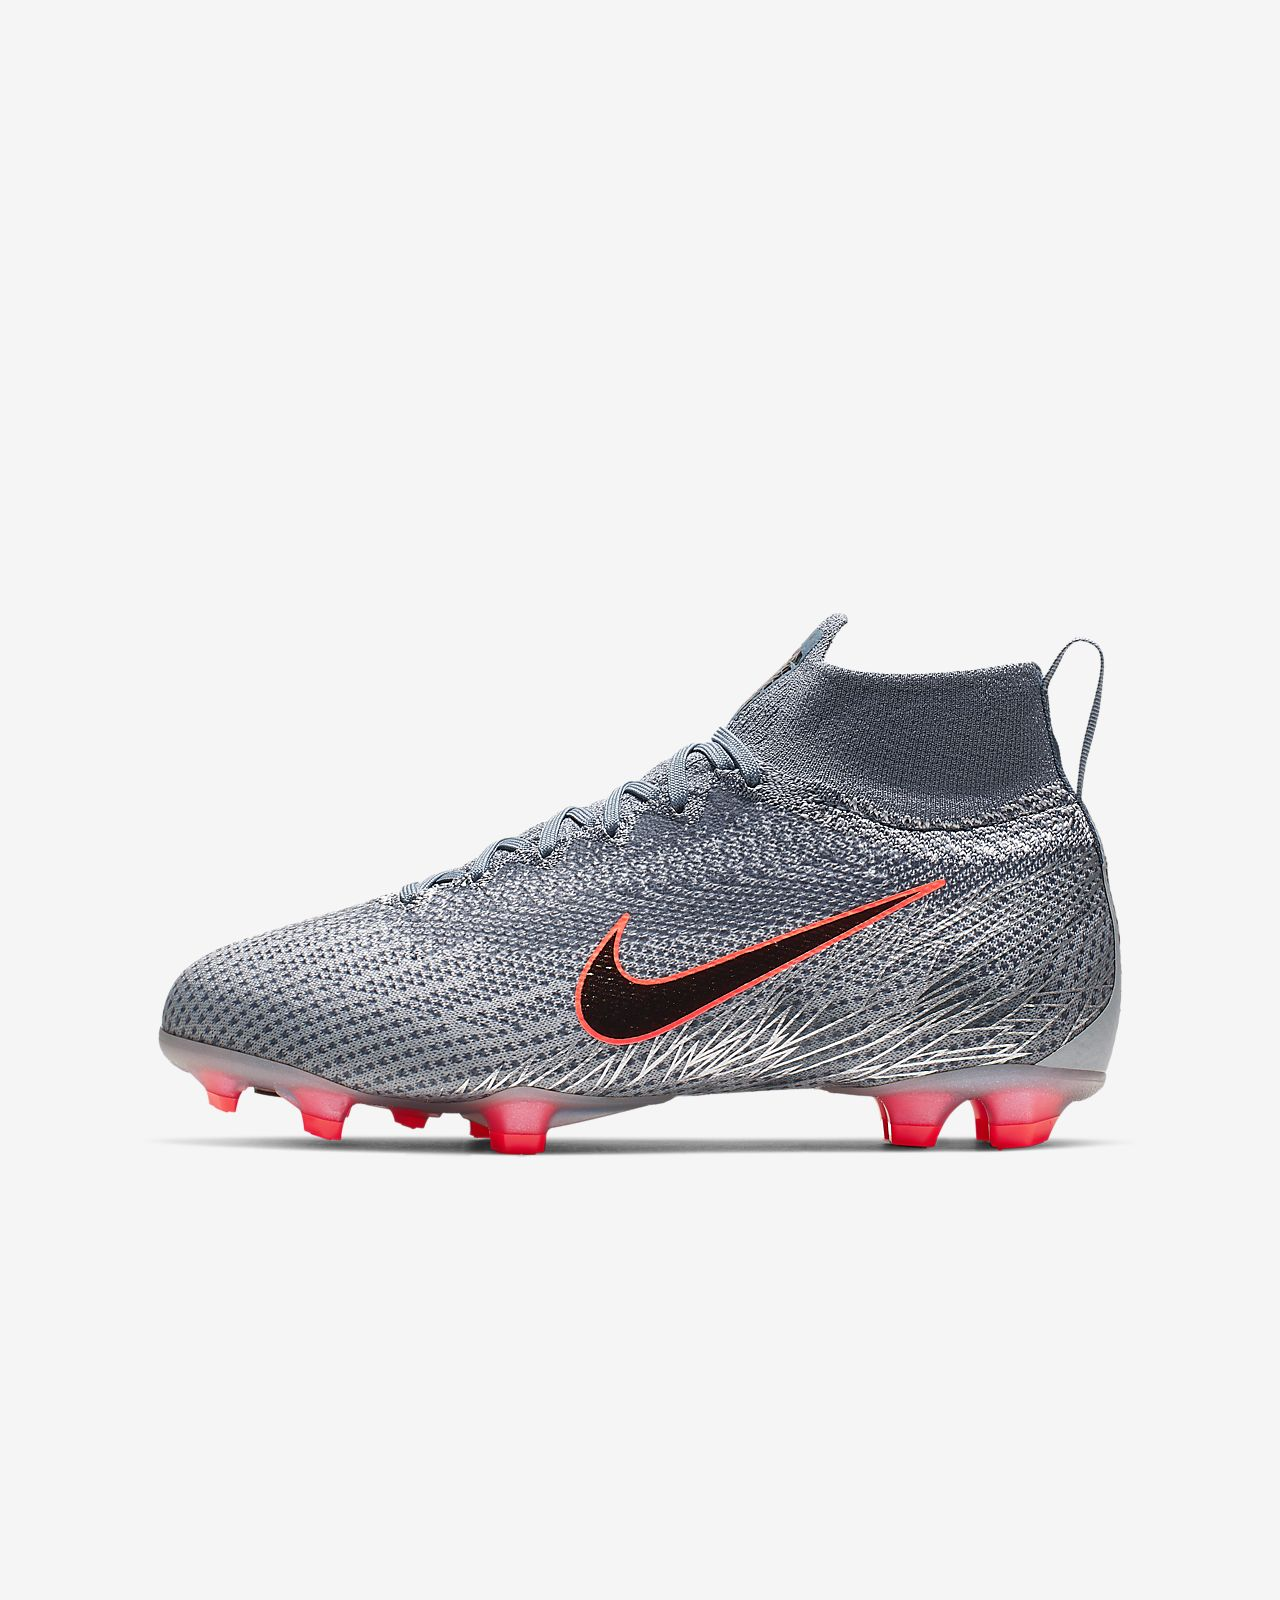 3c0456982 Nike Jr. Superfly 6 Elite FG Big Kids  Firm-Ground Soccer Cleat ...